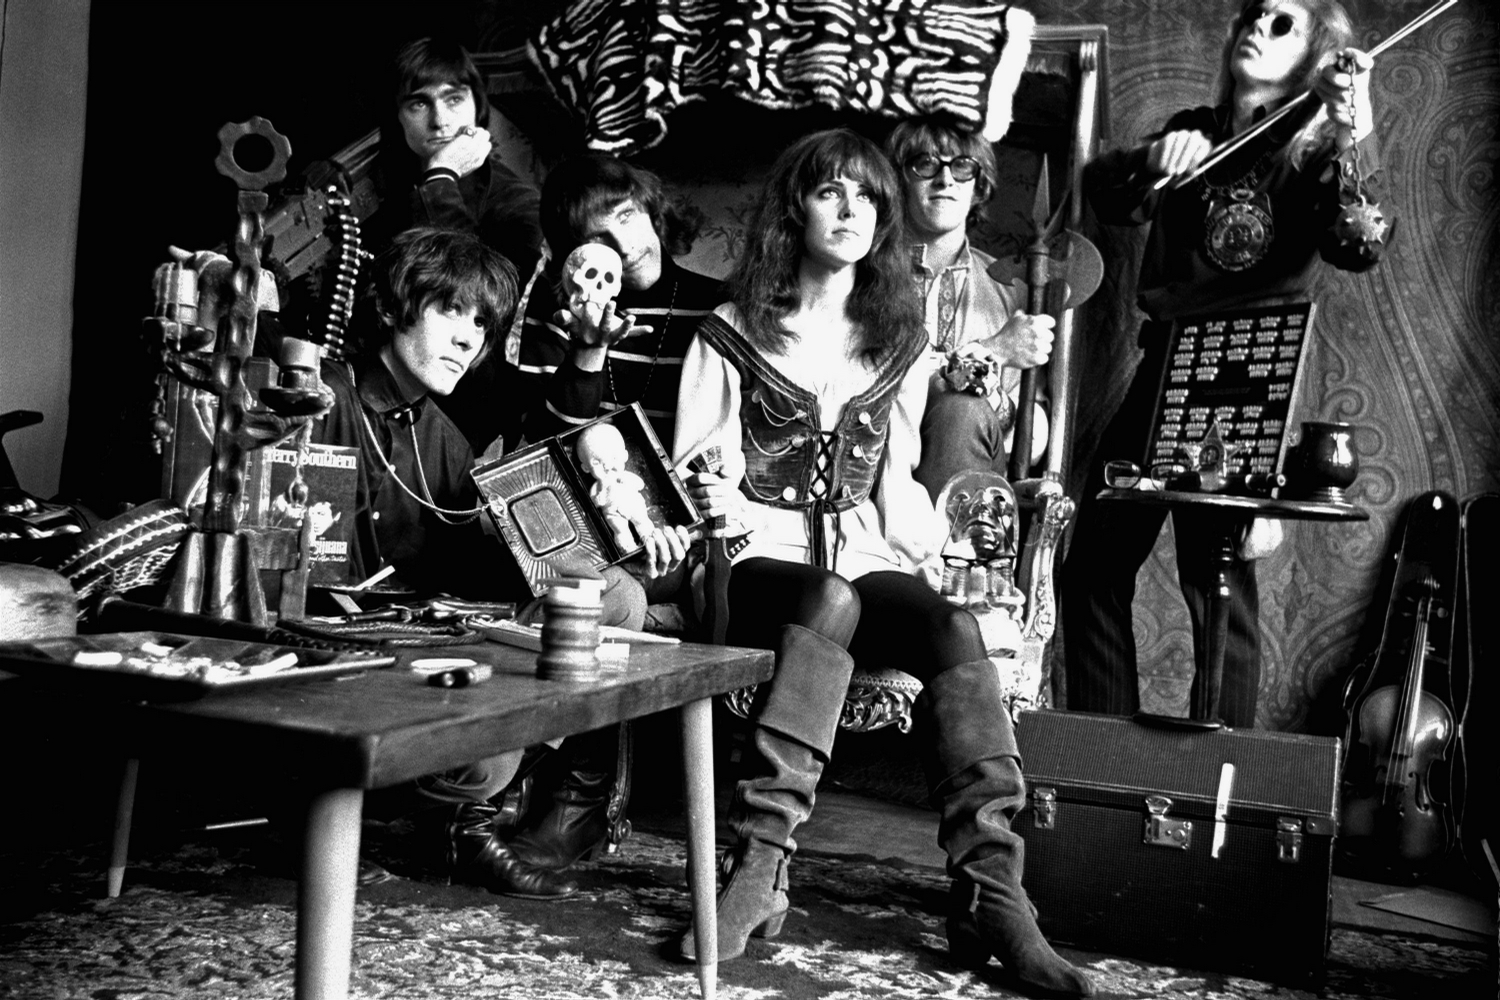 Jefferson_Airplane_cancelled_concert_in_Moscow